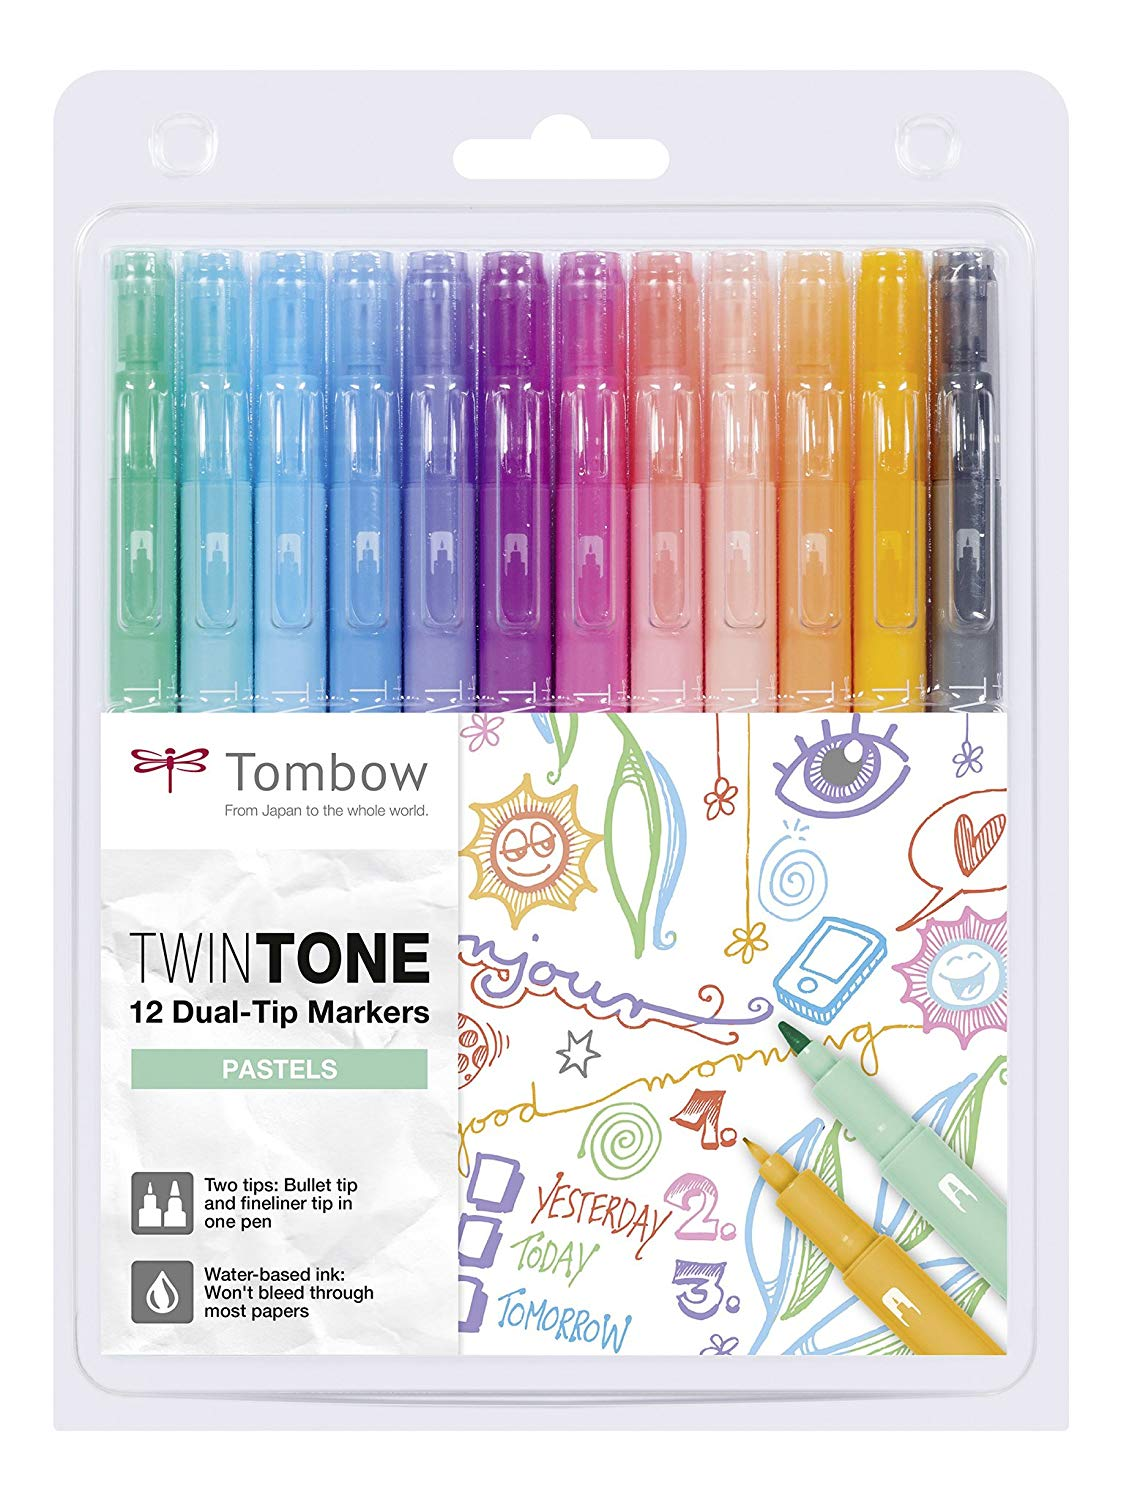 markers - After rediscovering my lost love for coloring books, I decided to invest in these pretty markers.